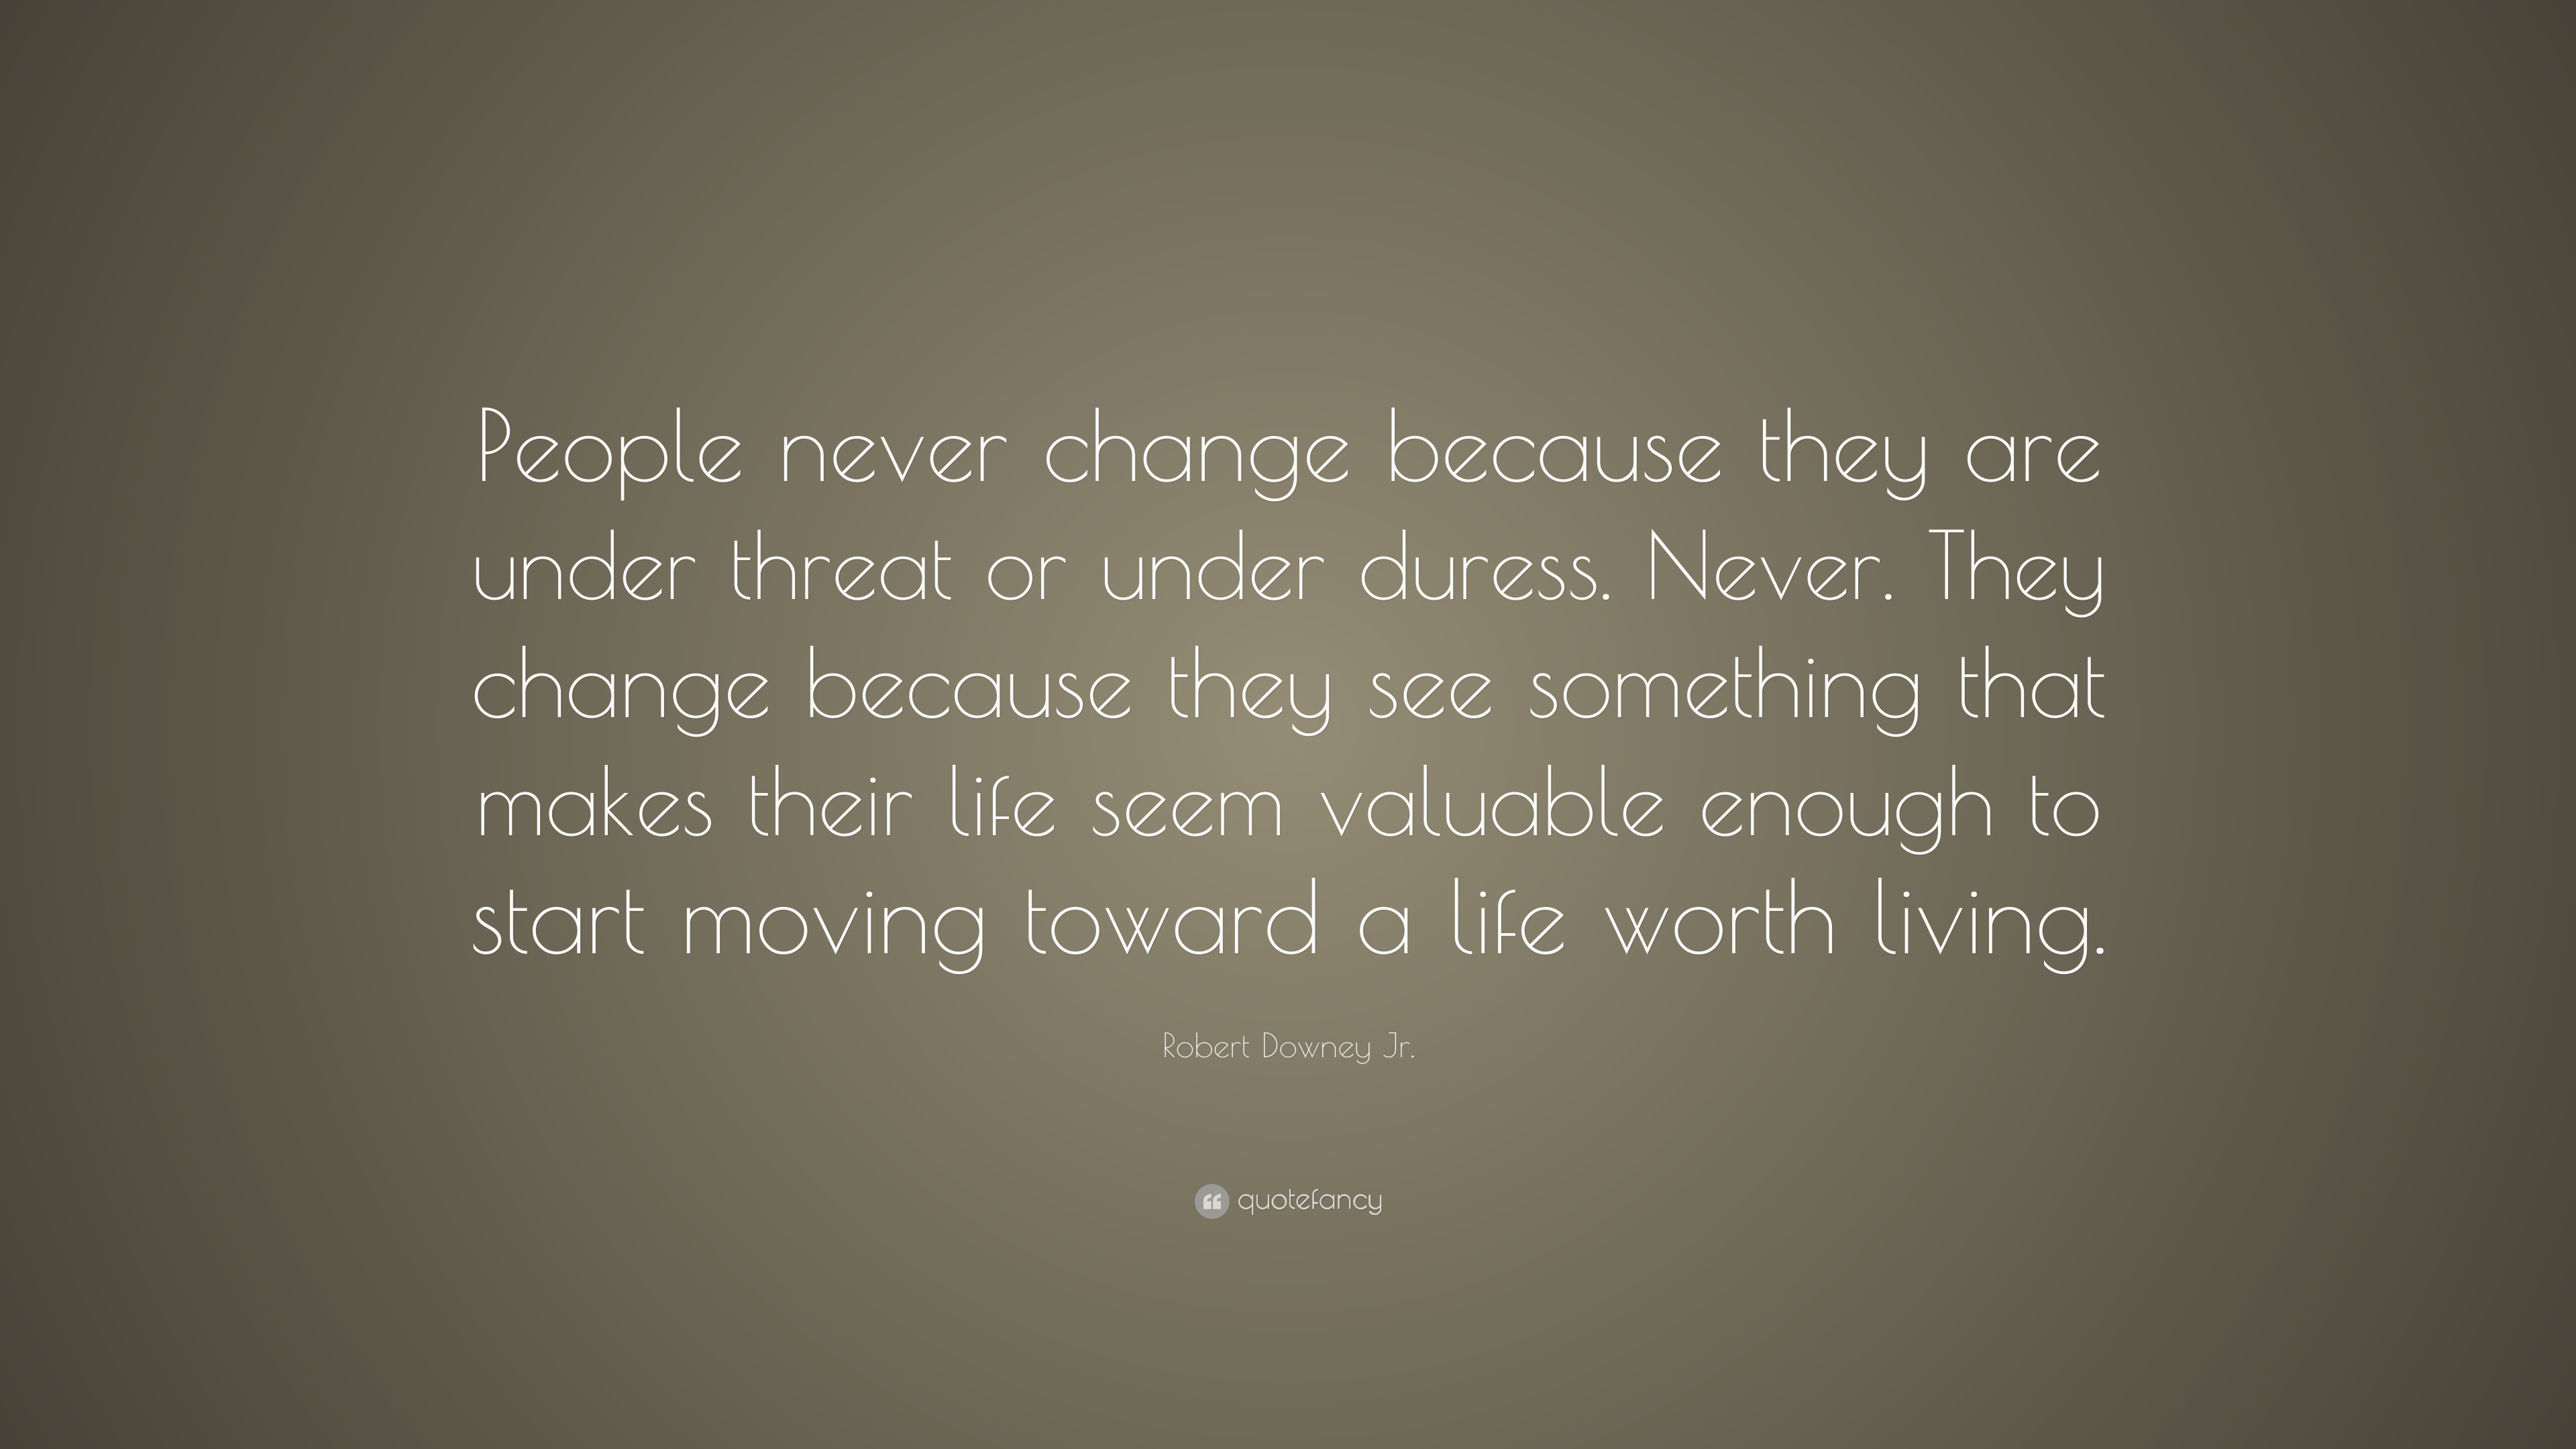 Robert Downey Jr Quote People Never Change Because They Are Under